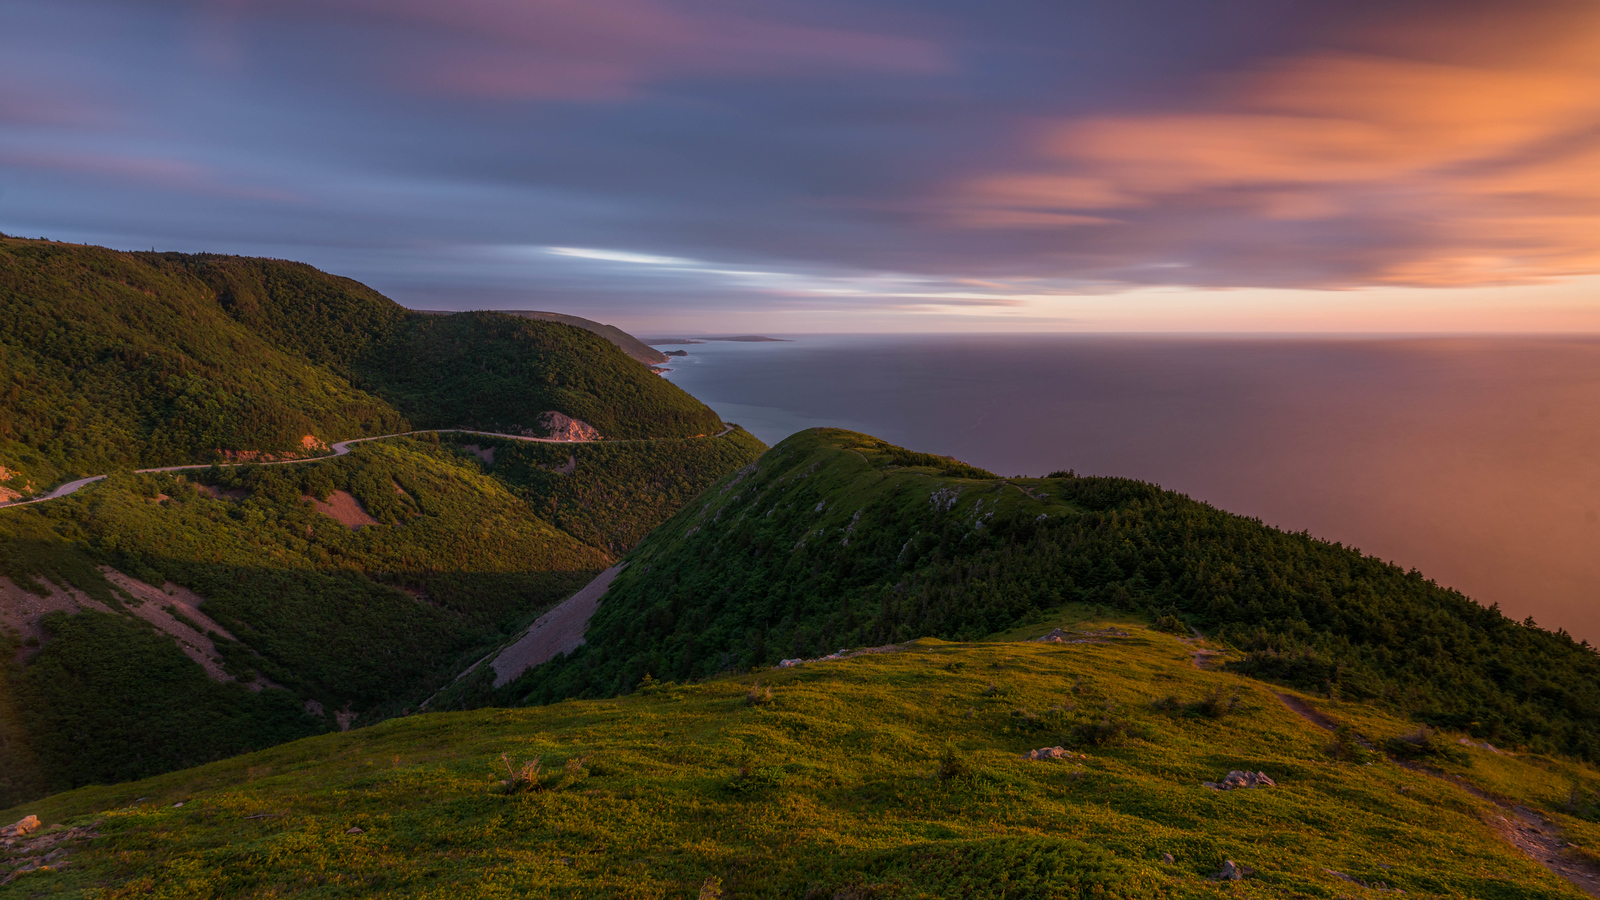 Sunset in Cape Breton, Nova Scotia, Canada